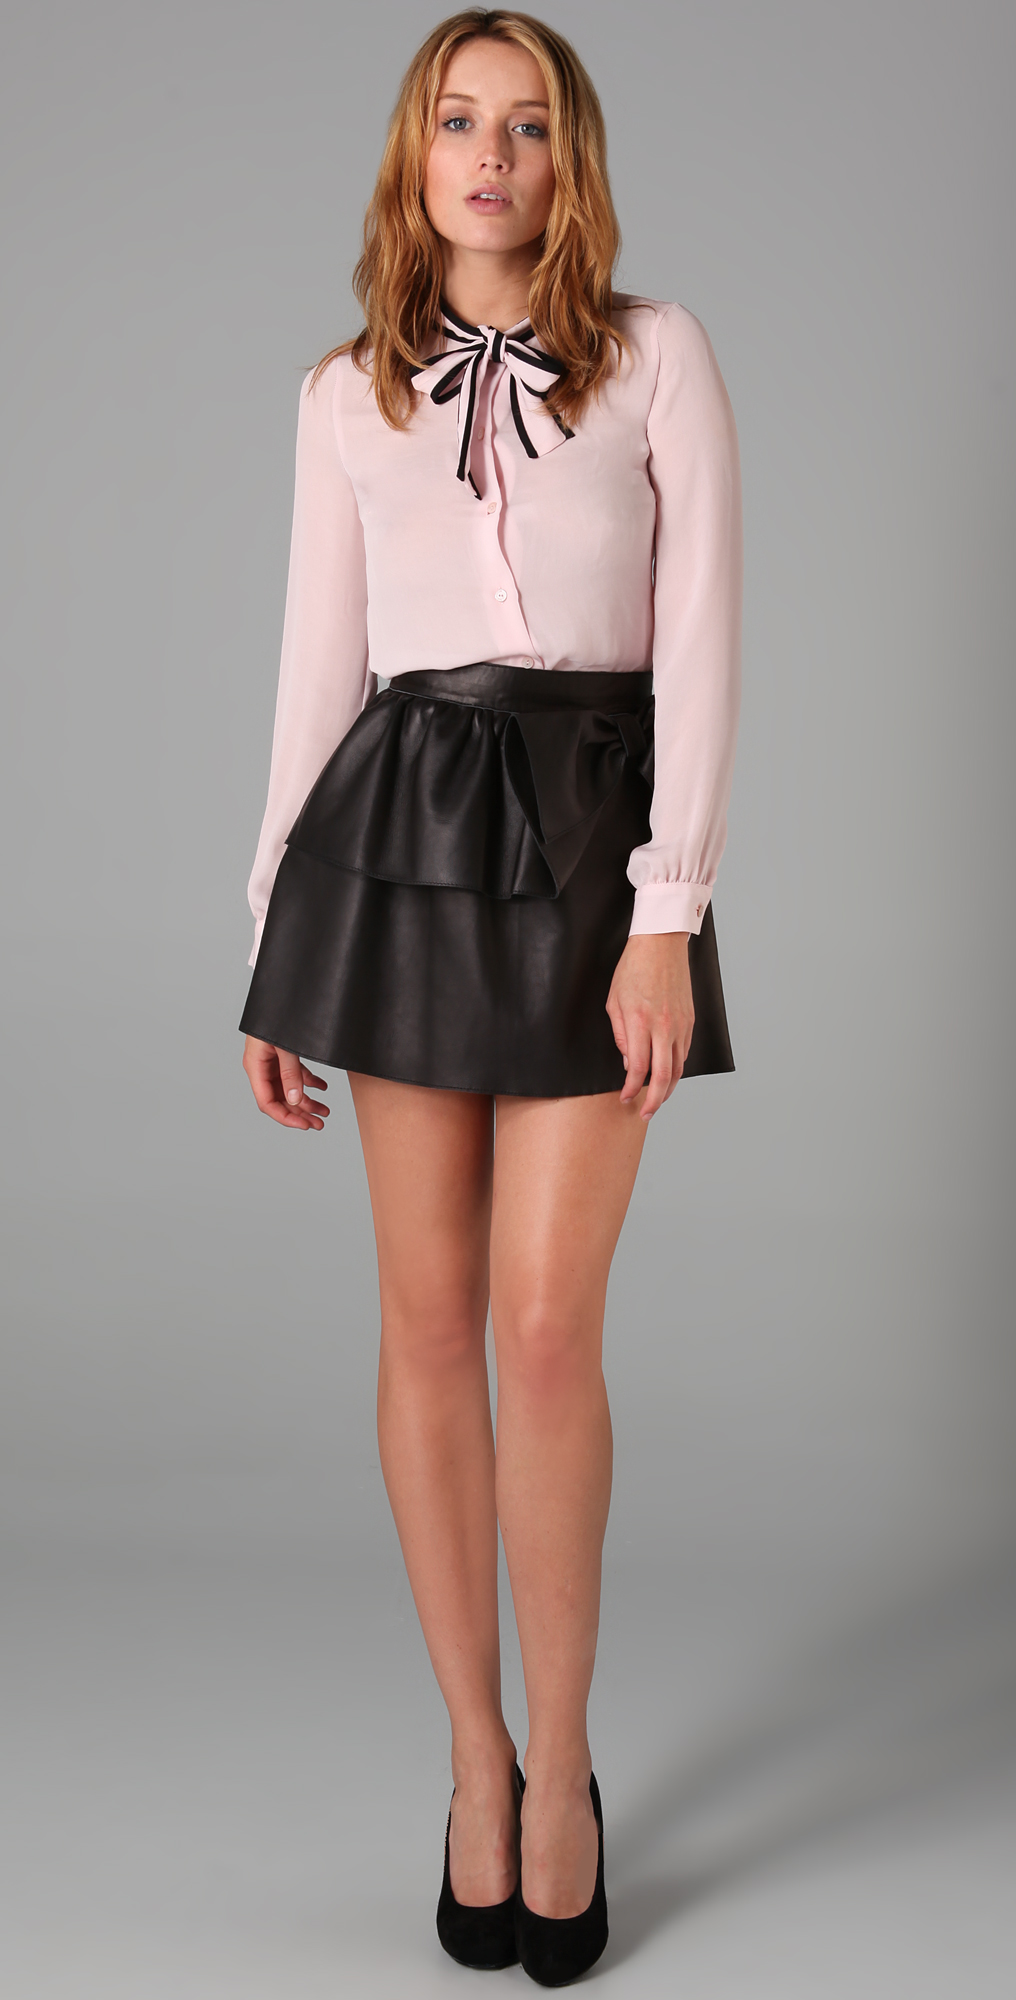 RED Valentino Short Leather Skirt with Bow - SHOPBOP